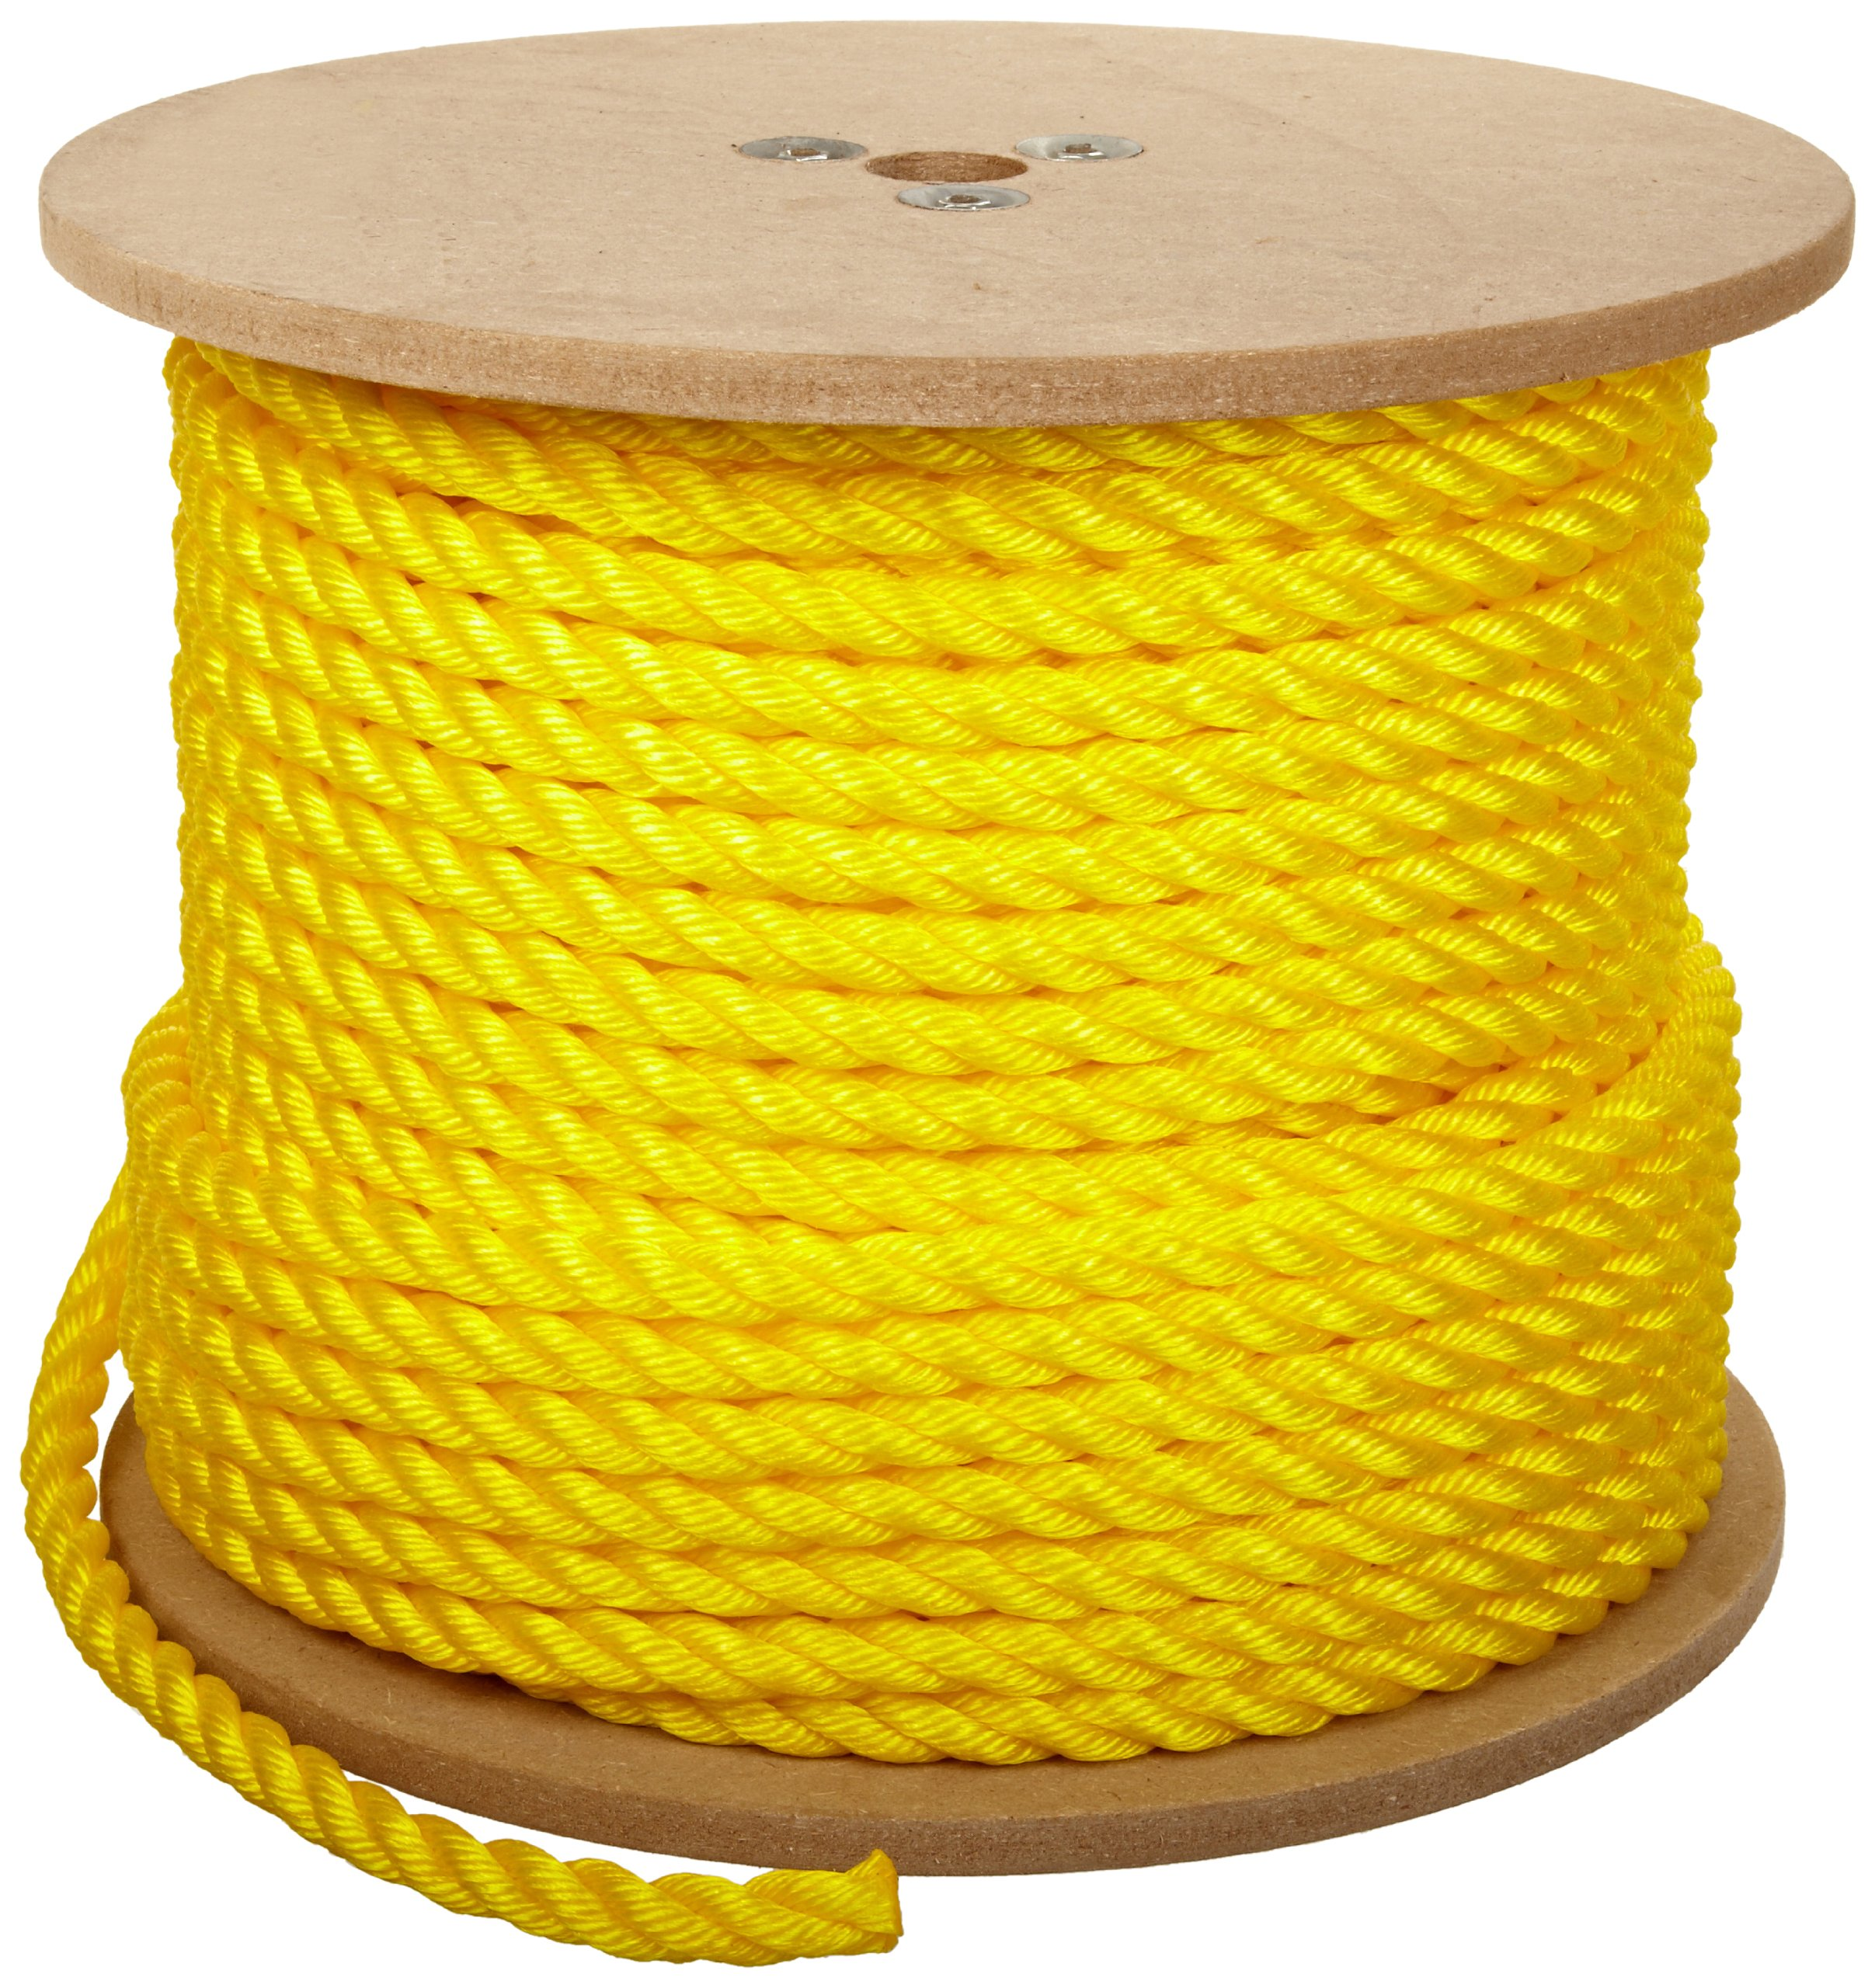 Rope King TP-58300Y Twisted Poly Rope - Yellow - 5/8 inch x 300 feet